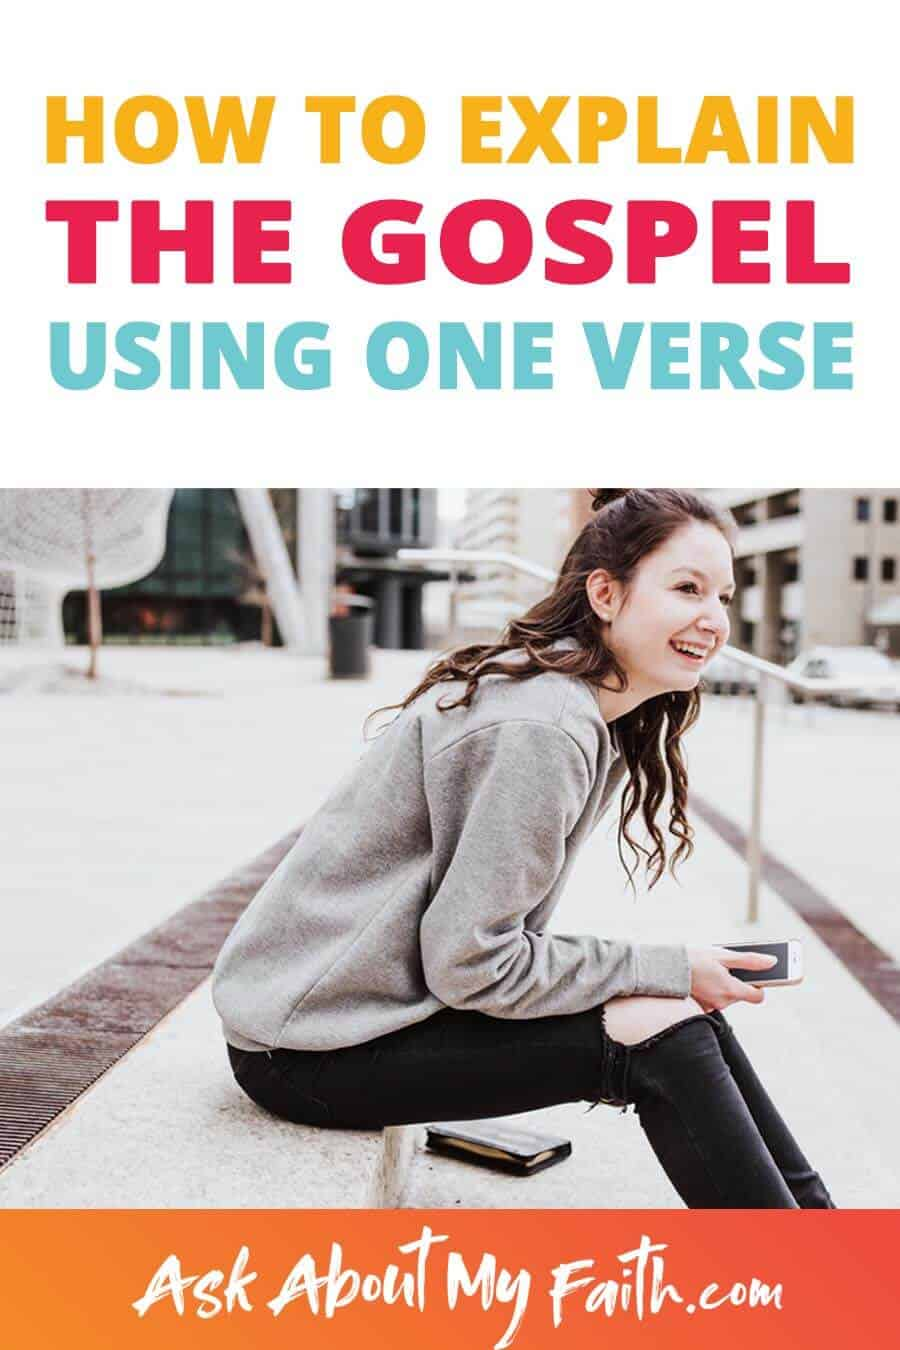 A Simple Way Every Christian Can Explain the Gospel | Explain the Gospel with one Bible Verse | Share Your Faith | Evangelism | Sharing God's Love With Others | Love Your Neighbor | Faith Conversation